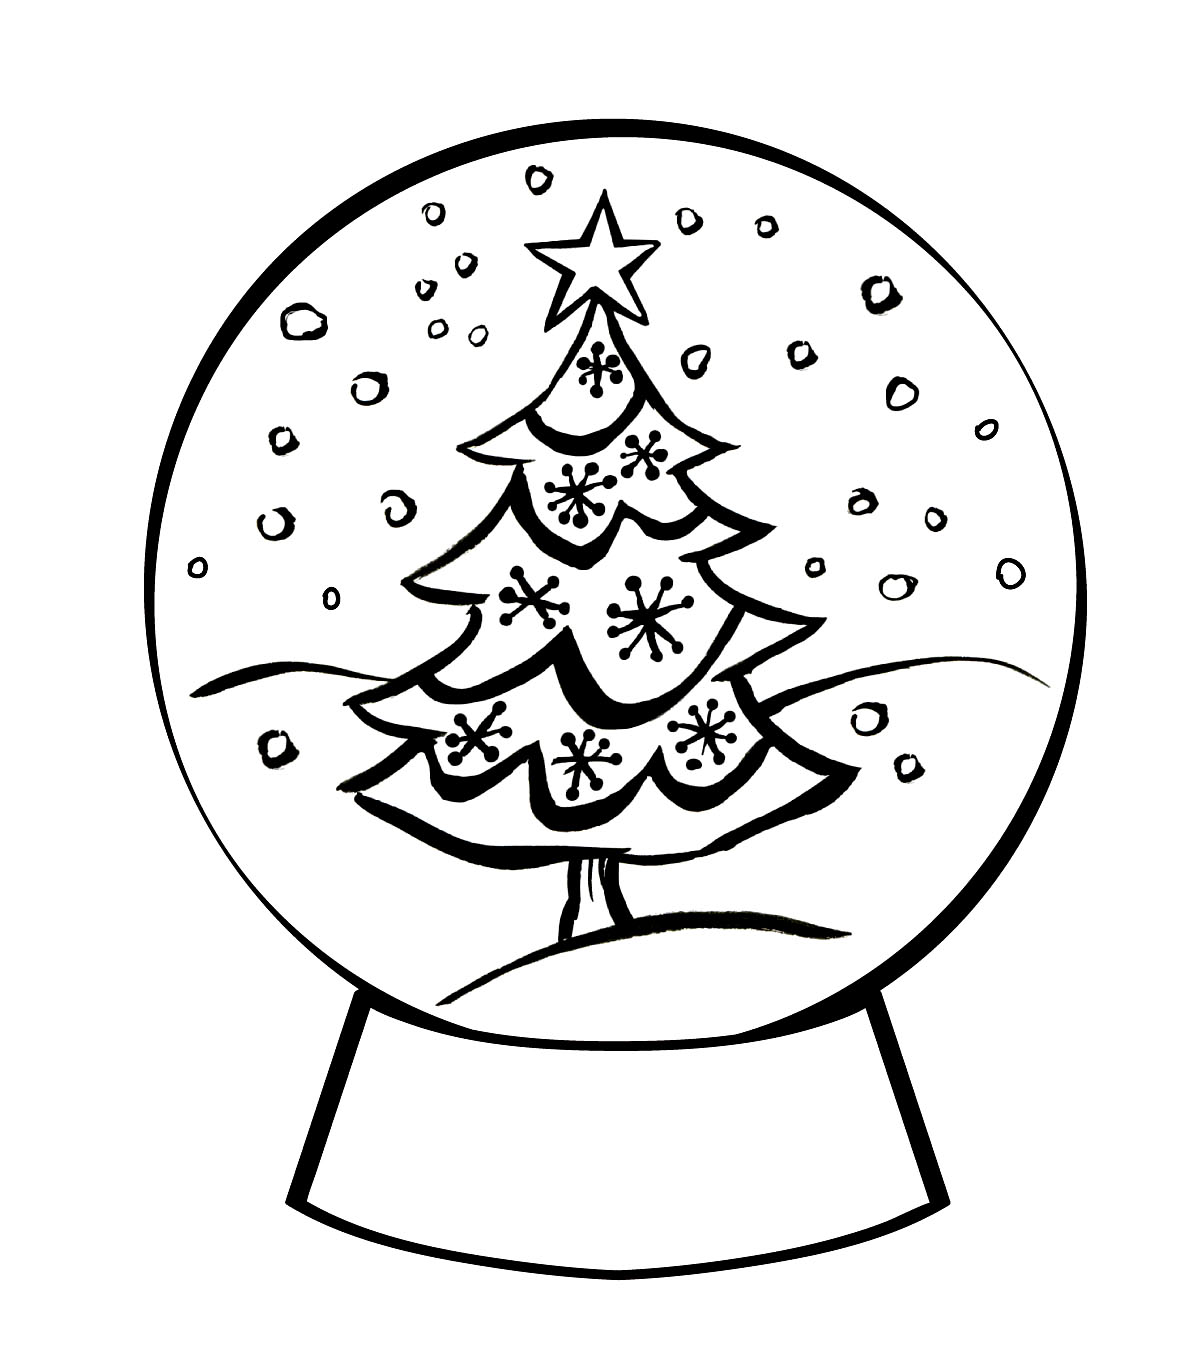 Snowglobe Coloring Pages - Best Coloring Pages For Kids